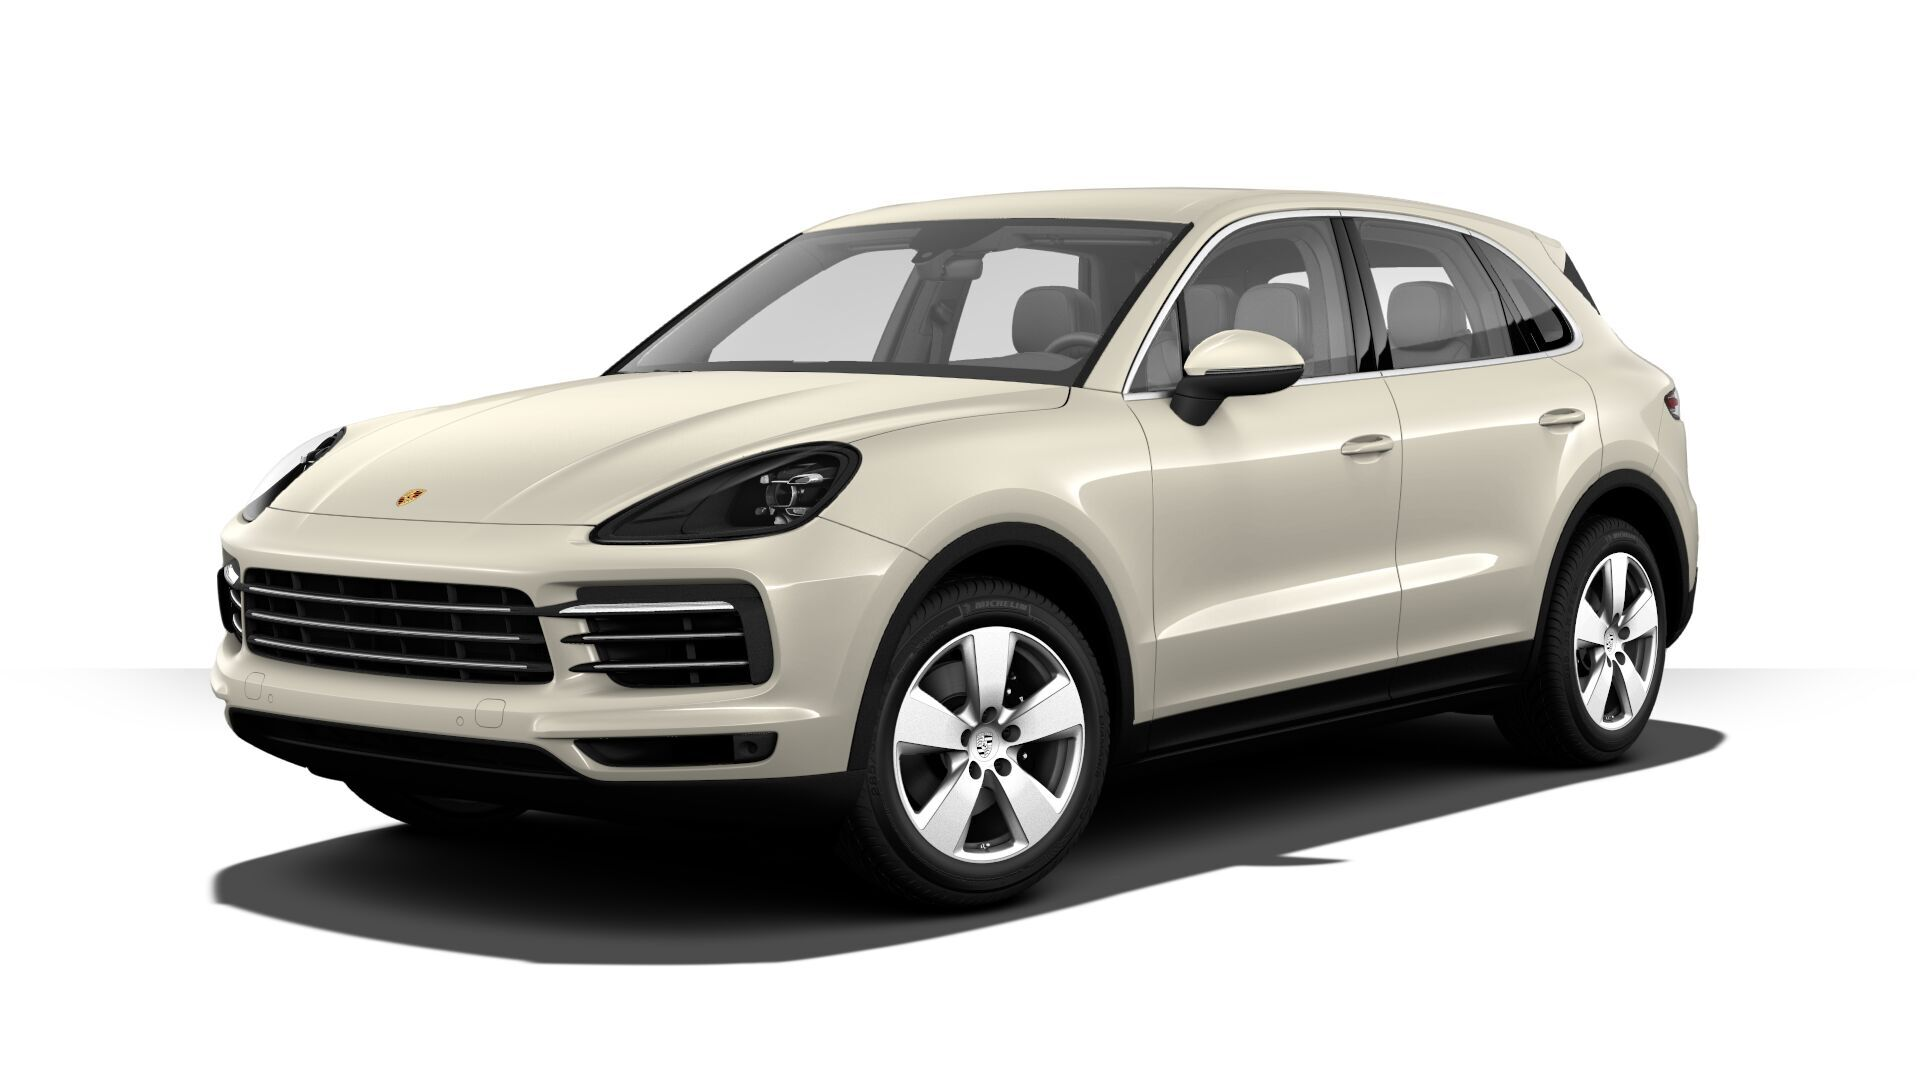 New 2020 Porsche Cayenne | Porsche Exchange